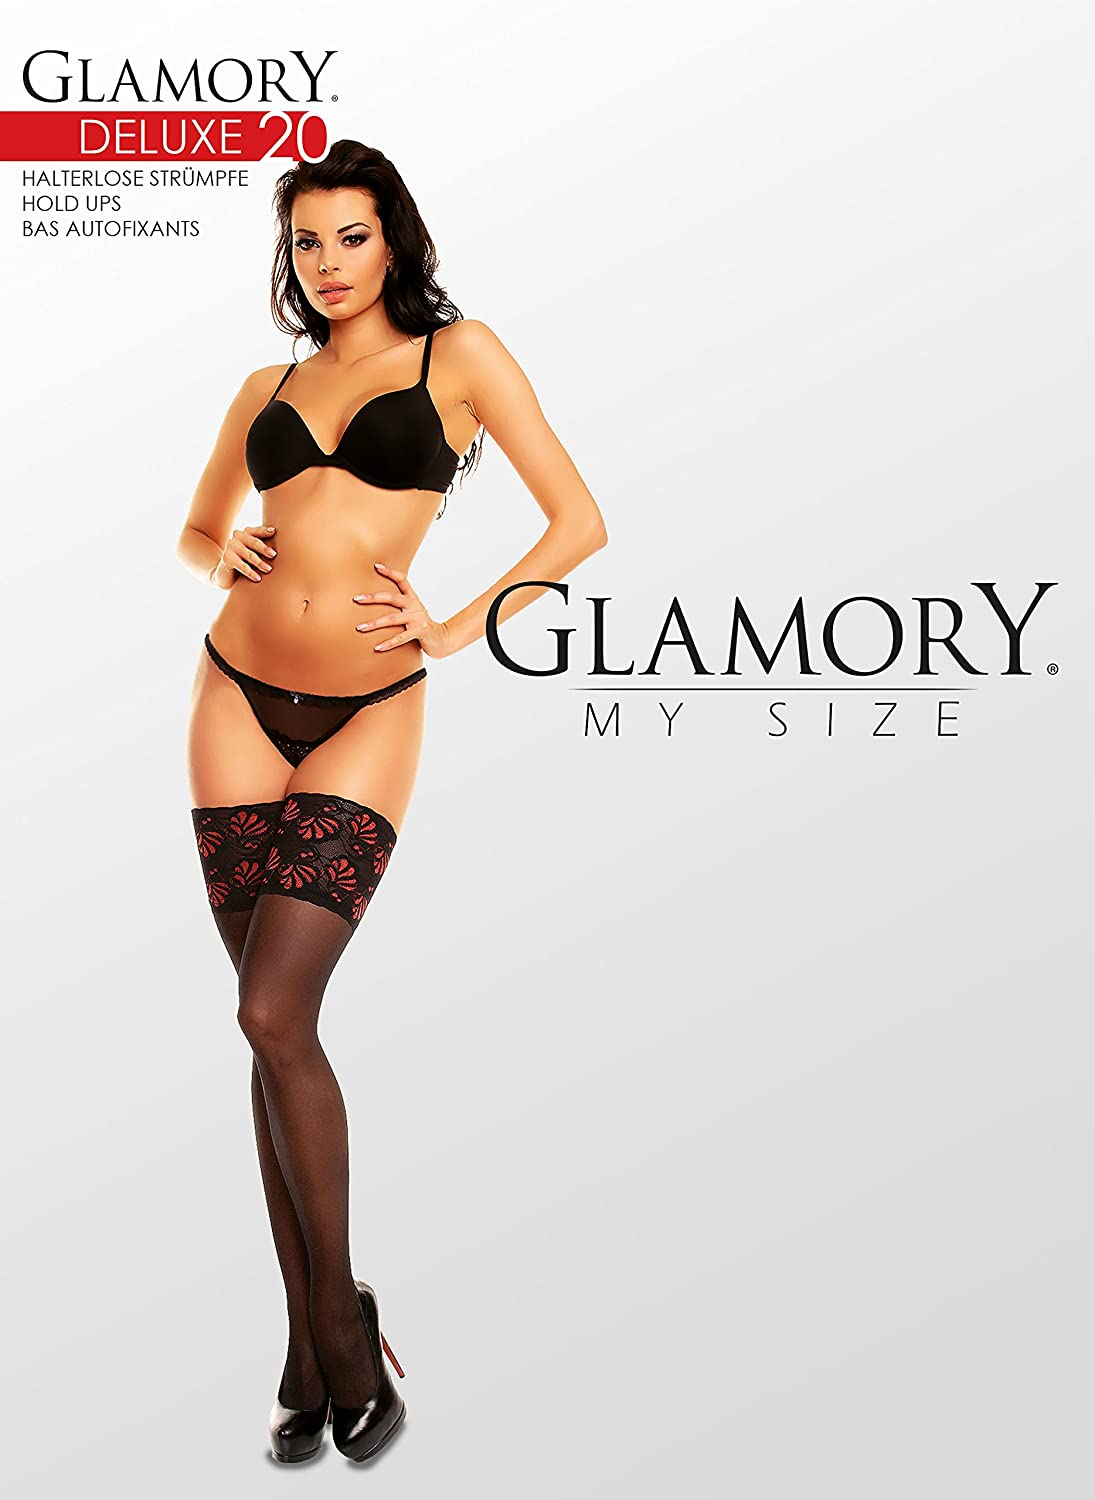 c3af731566d Amazon.com  Glamory Women s Deluxe 20 Plus Size Thigh Highs  Clothing